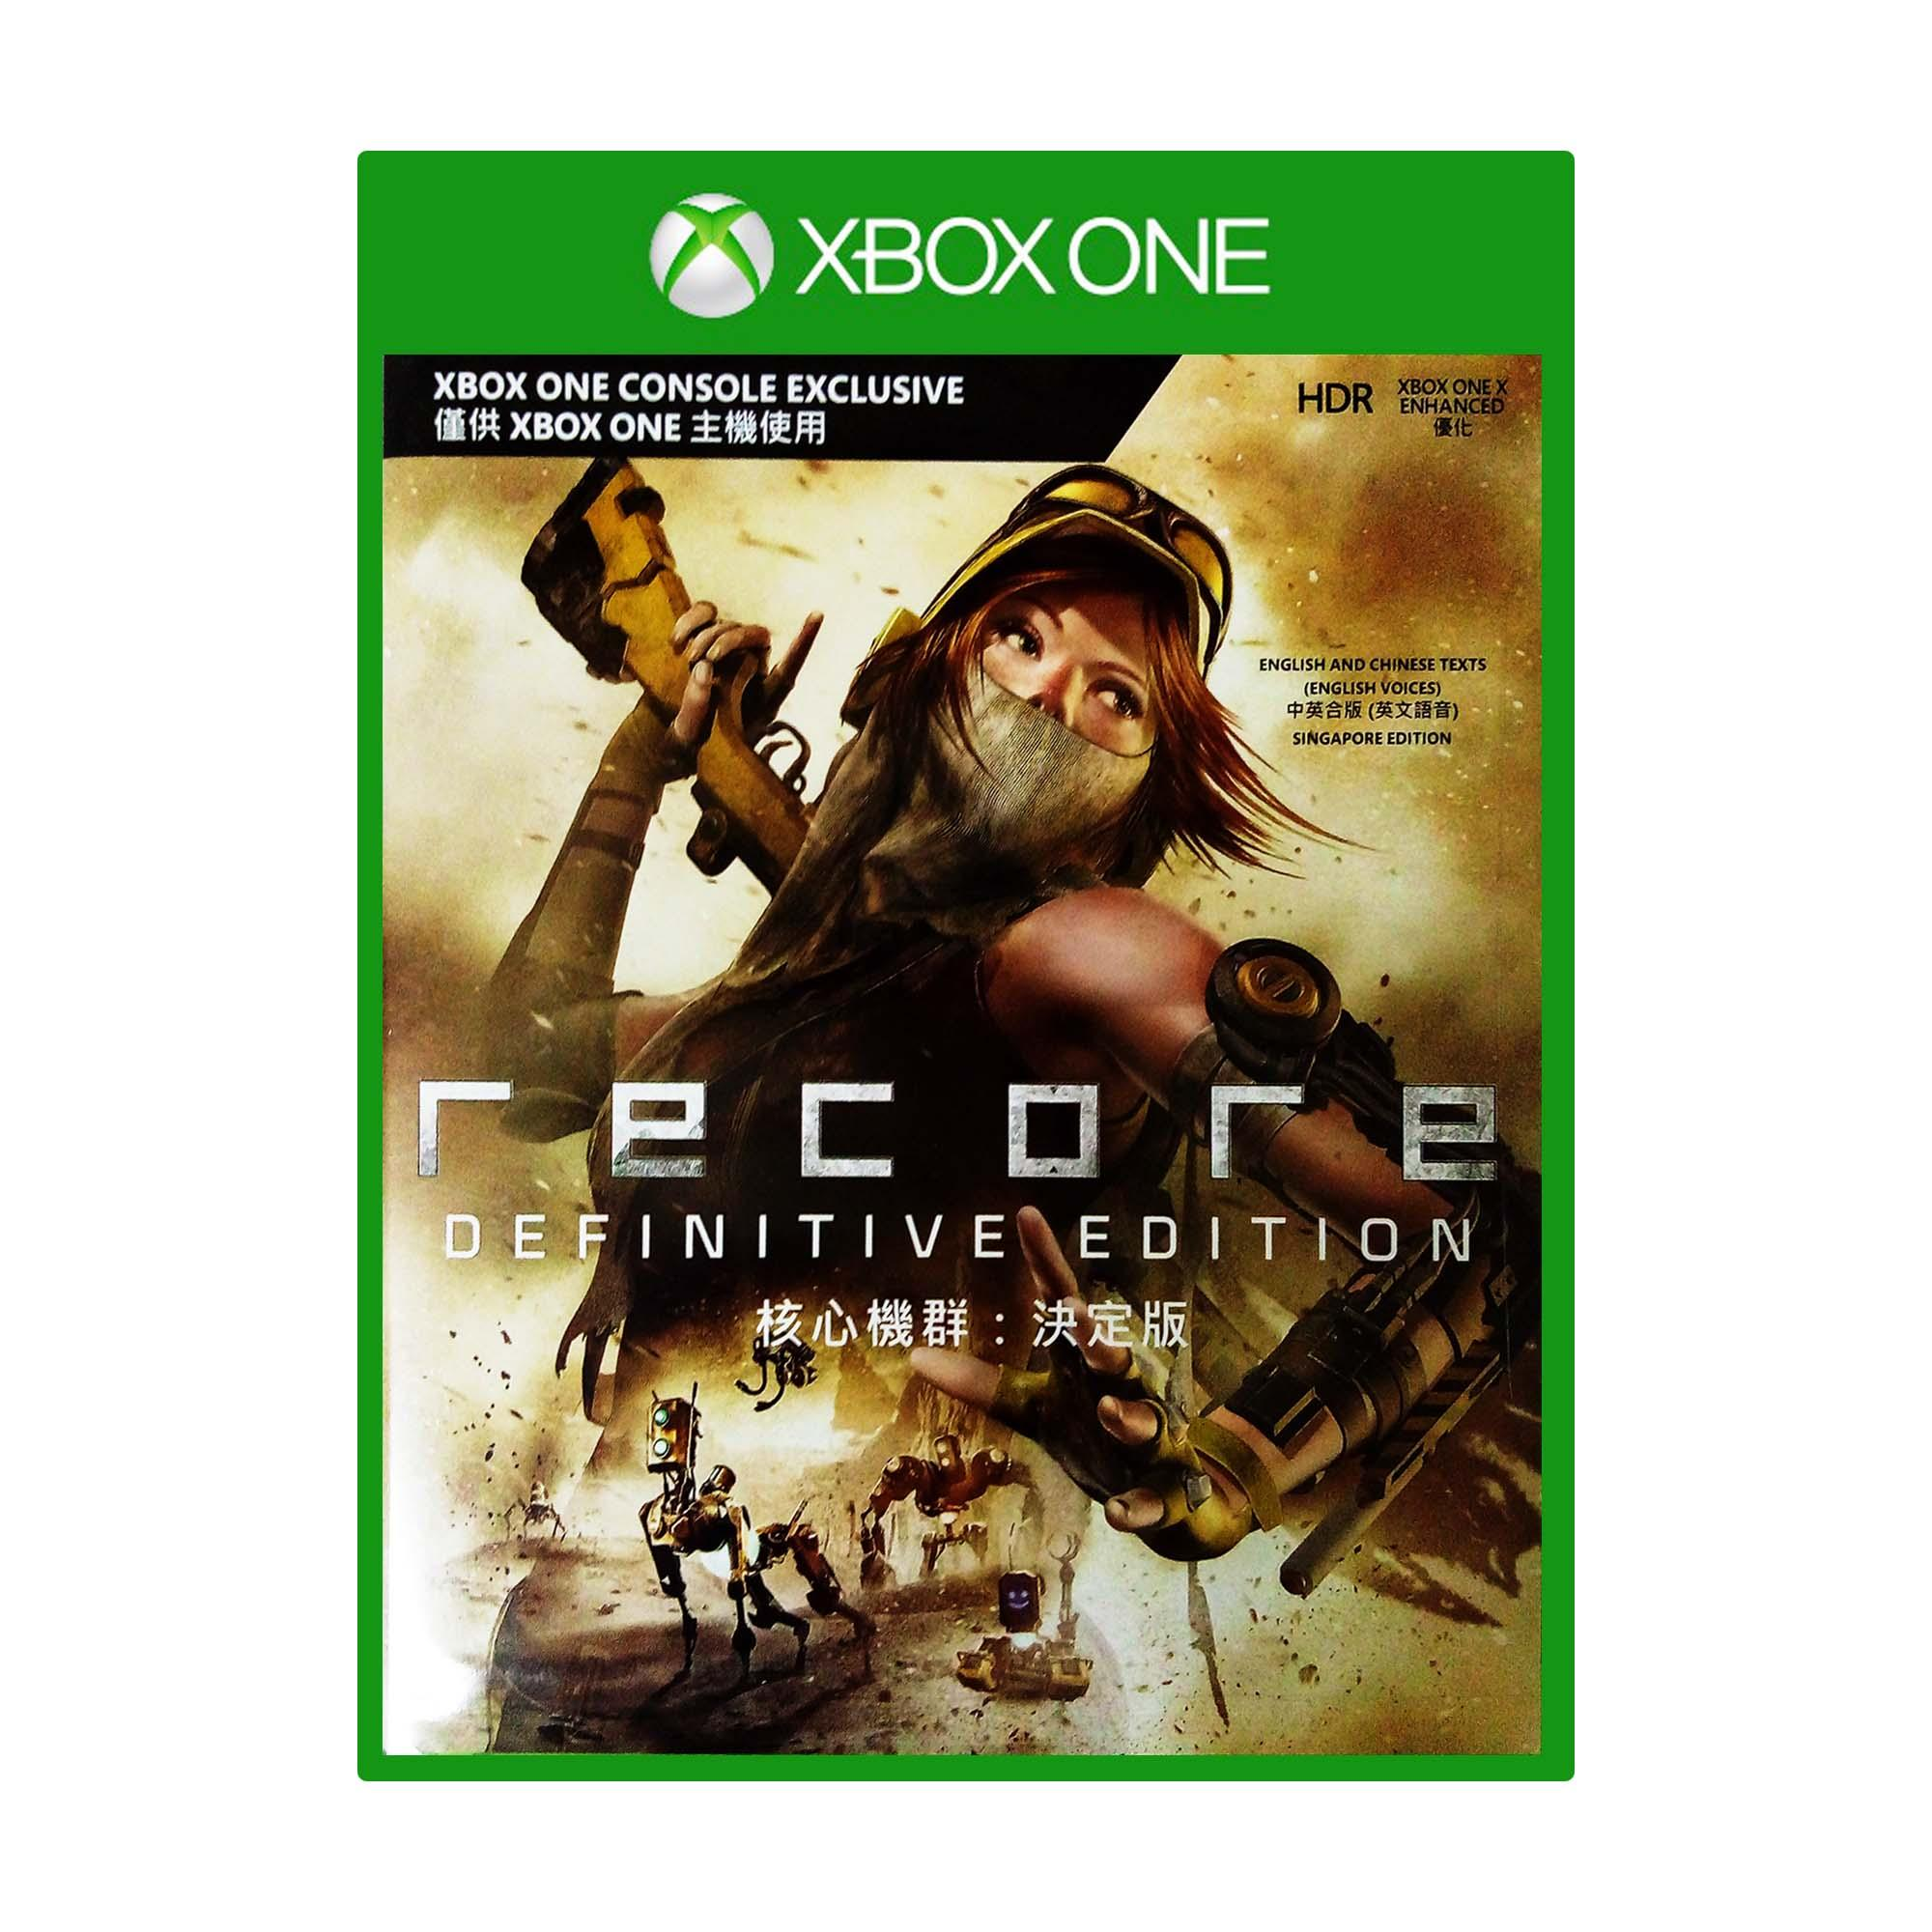 Xbox One Games For Sale 360 Prices Brands Specs In Mx Gp 2 Cover English Re Core Definitive Edition